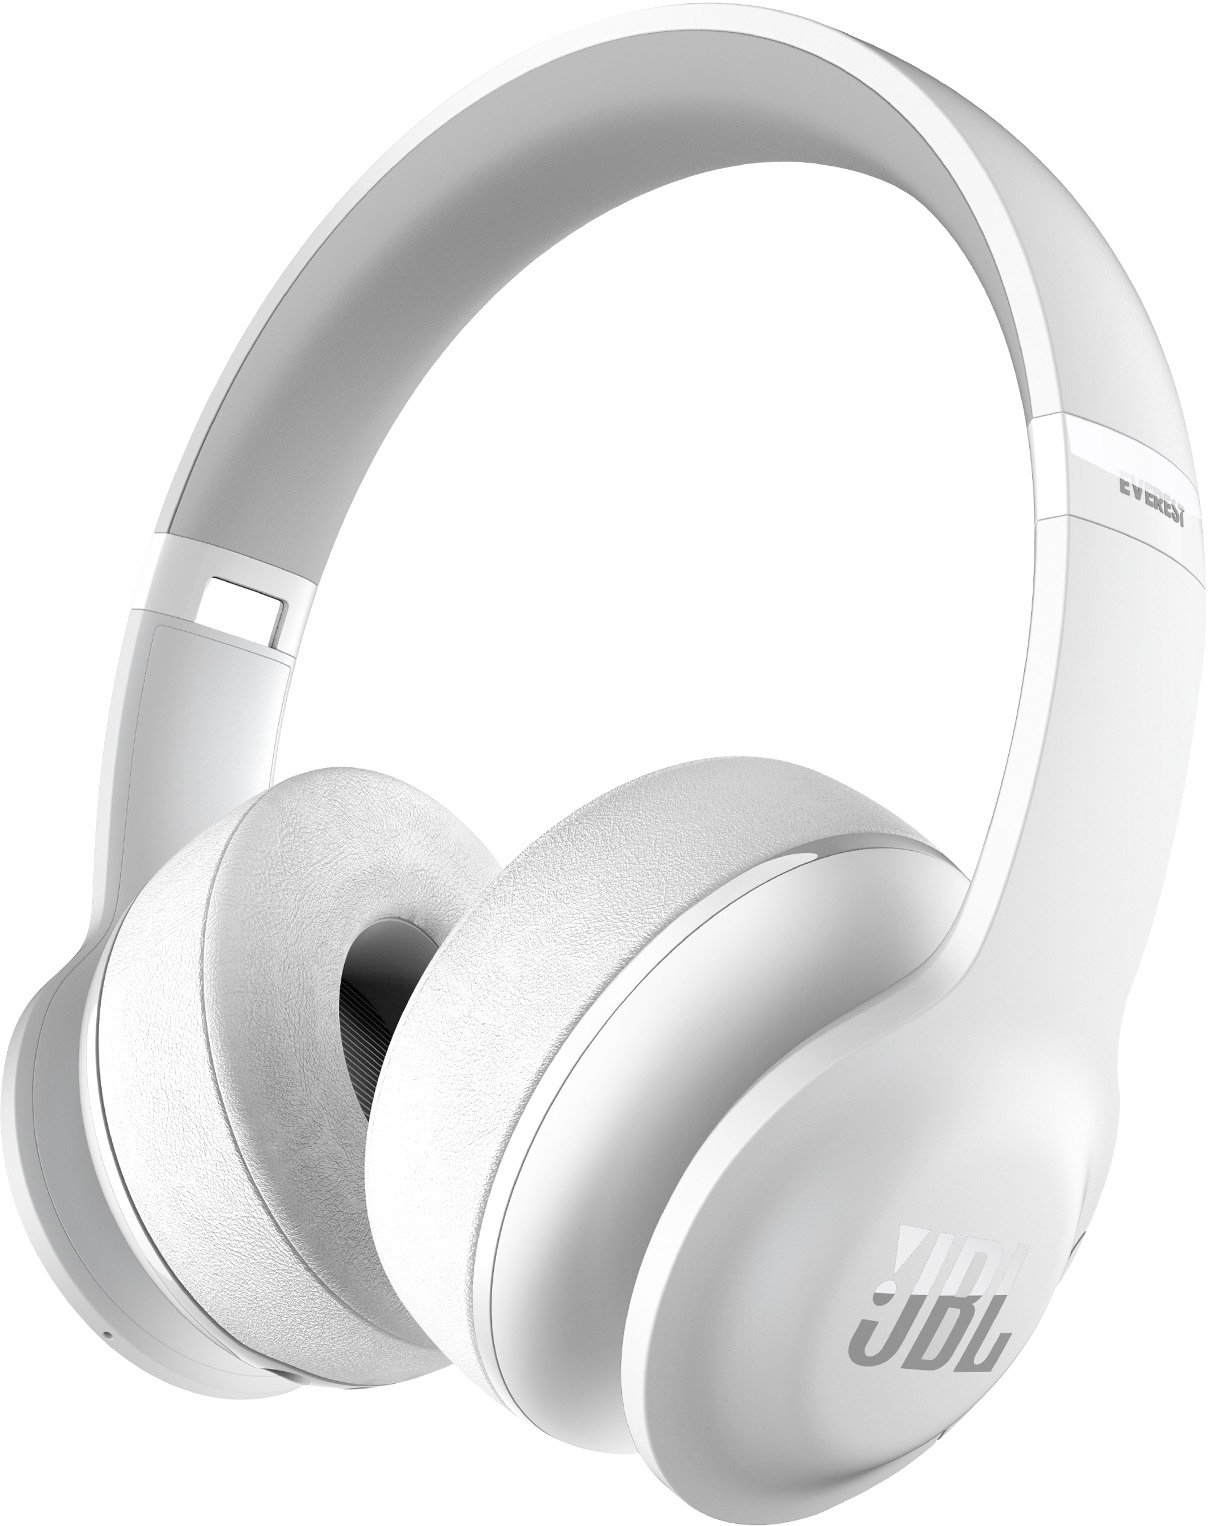 JBL Everest 300 On-Ear Wireless Headphones (White)